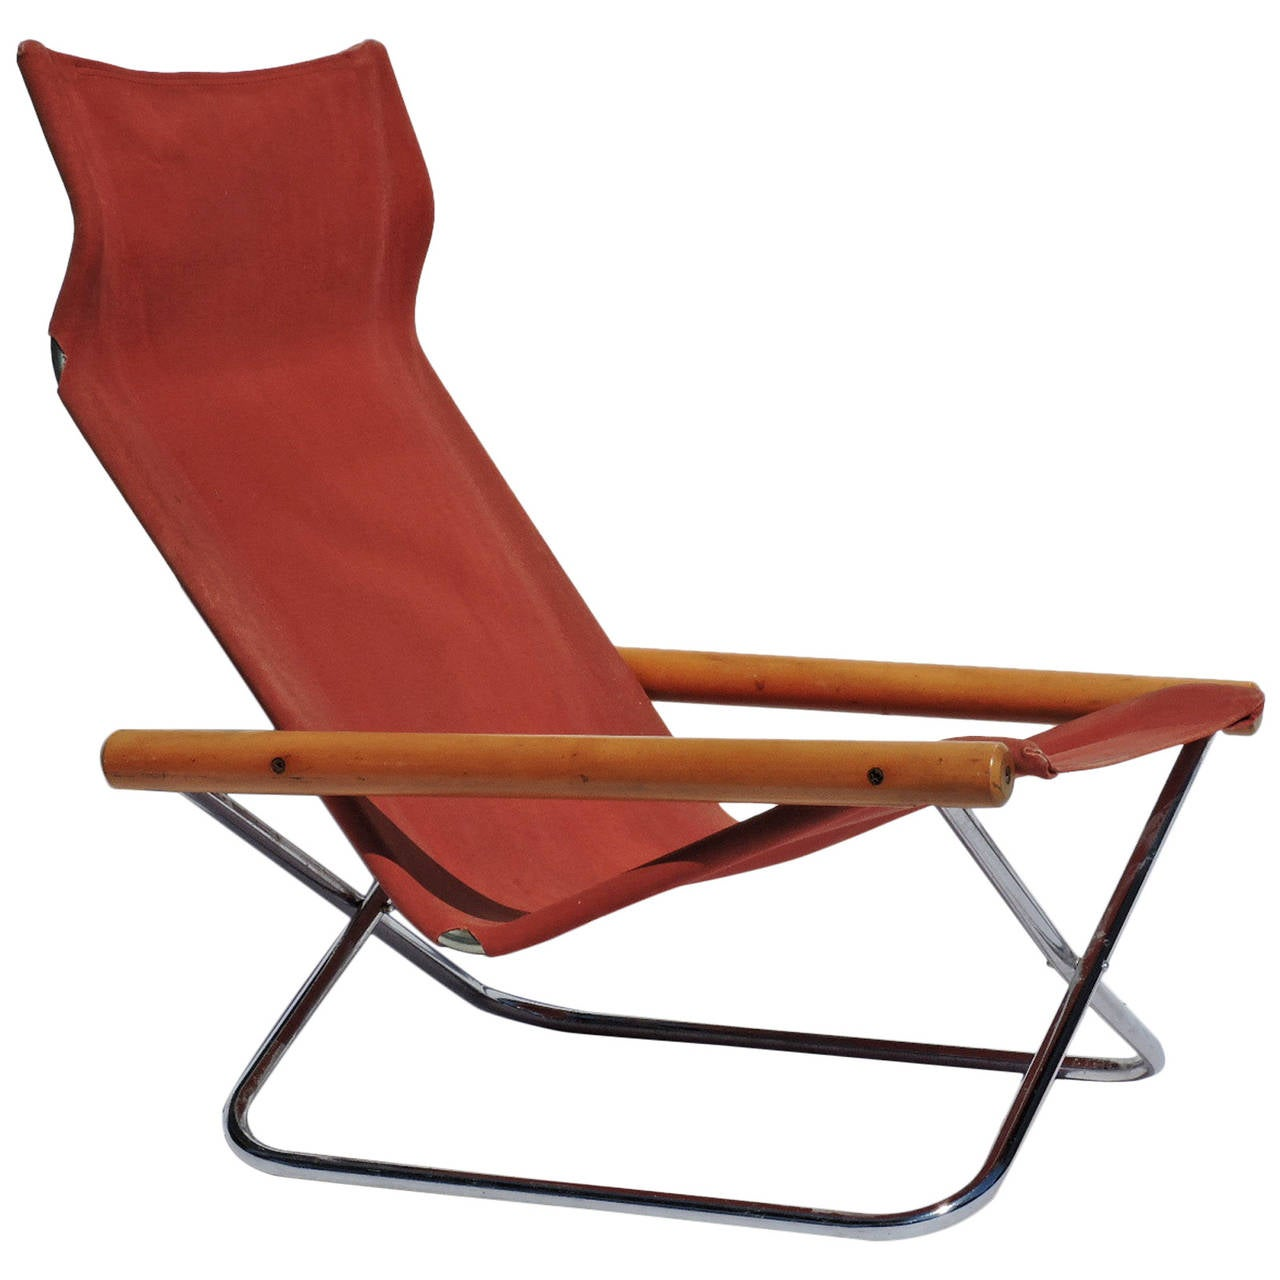 Japanese Chair Ny Folding Chair By Takeshi Nii Japan 1958 At 1stdibs